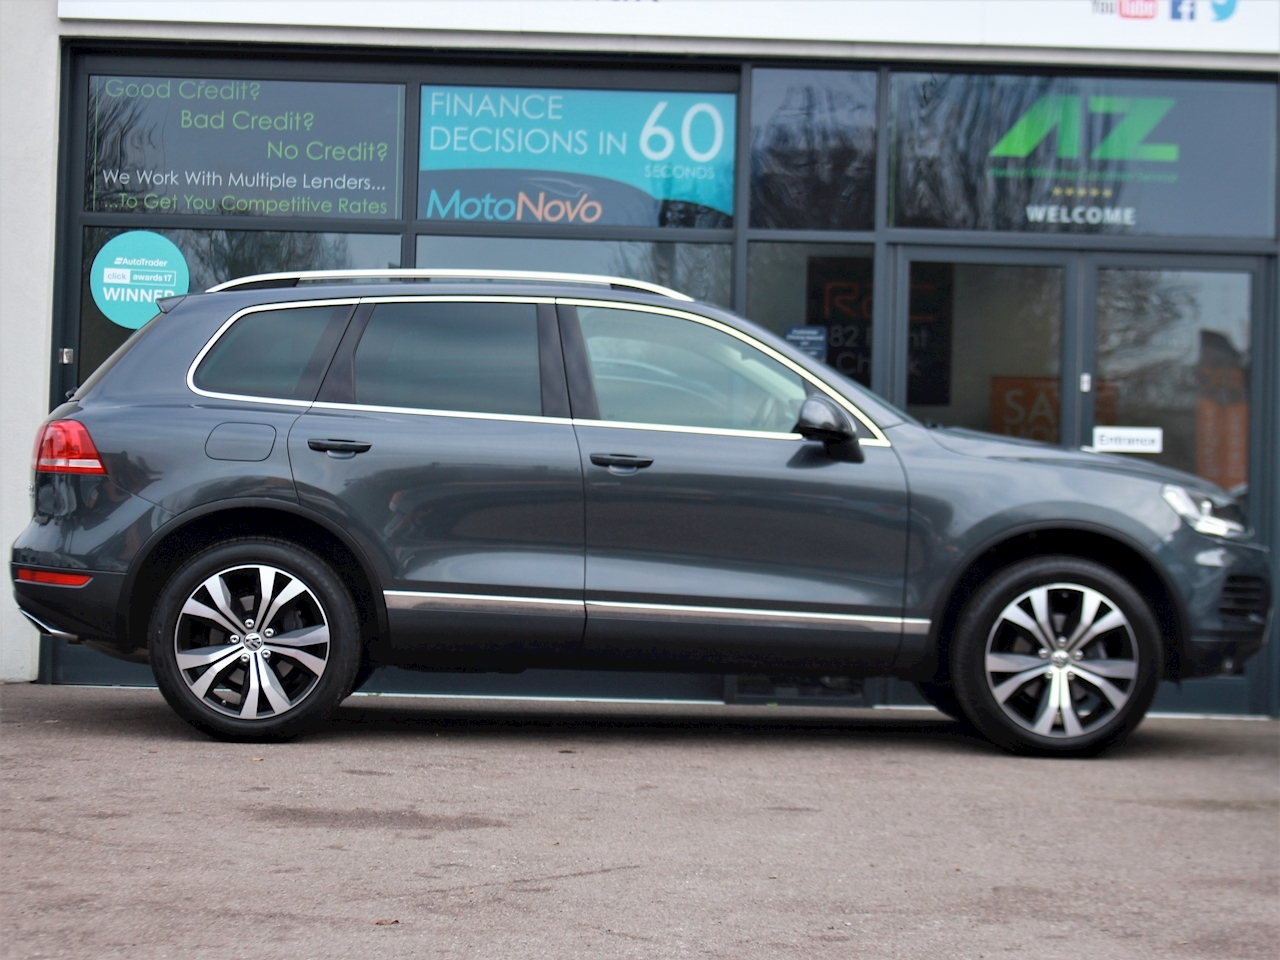 Volkswagen Touareg V6 Se Tdi Bluemotion Technology - Large 5